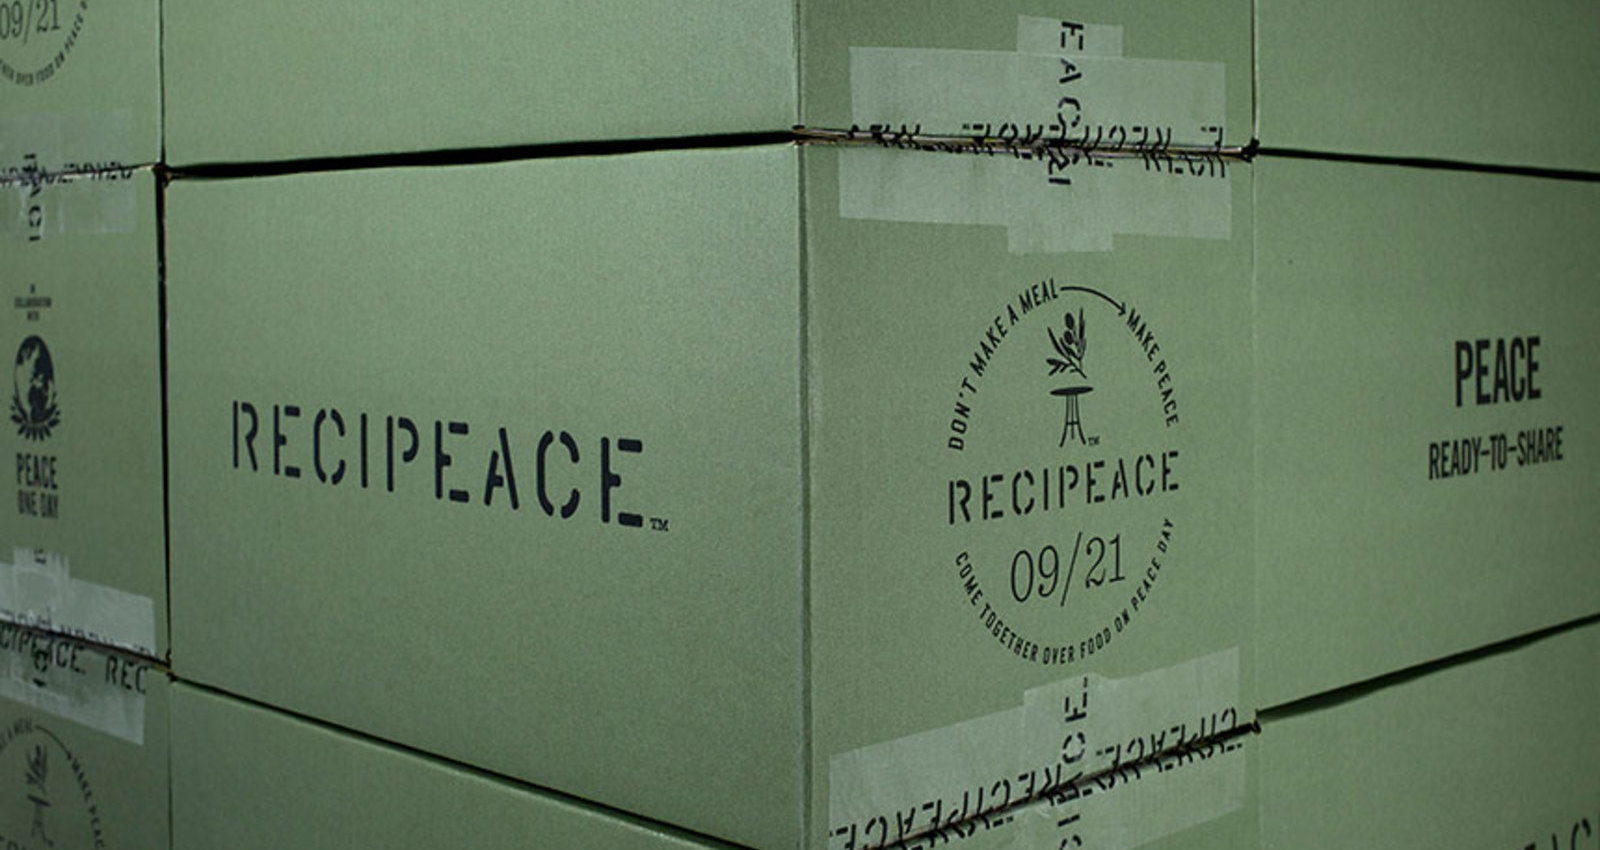 Recipeace Peace Kit